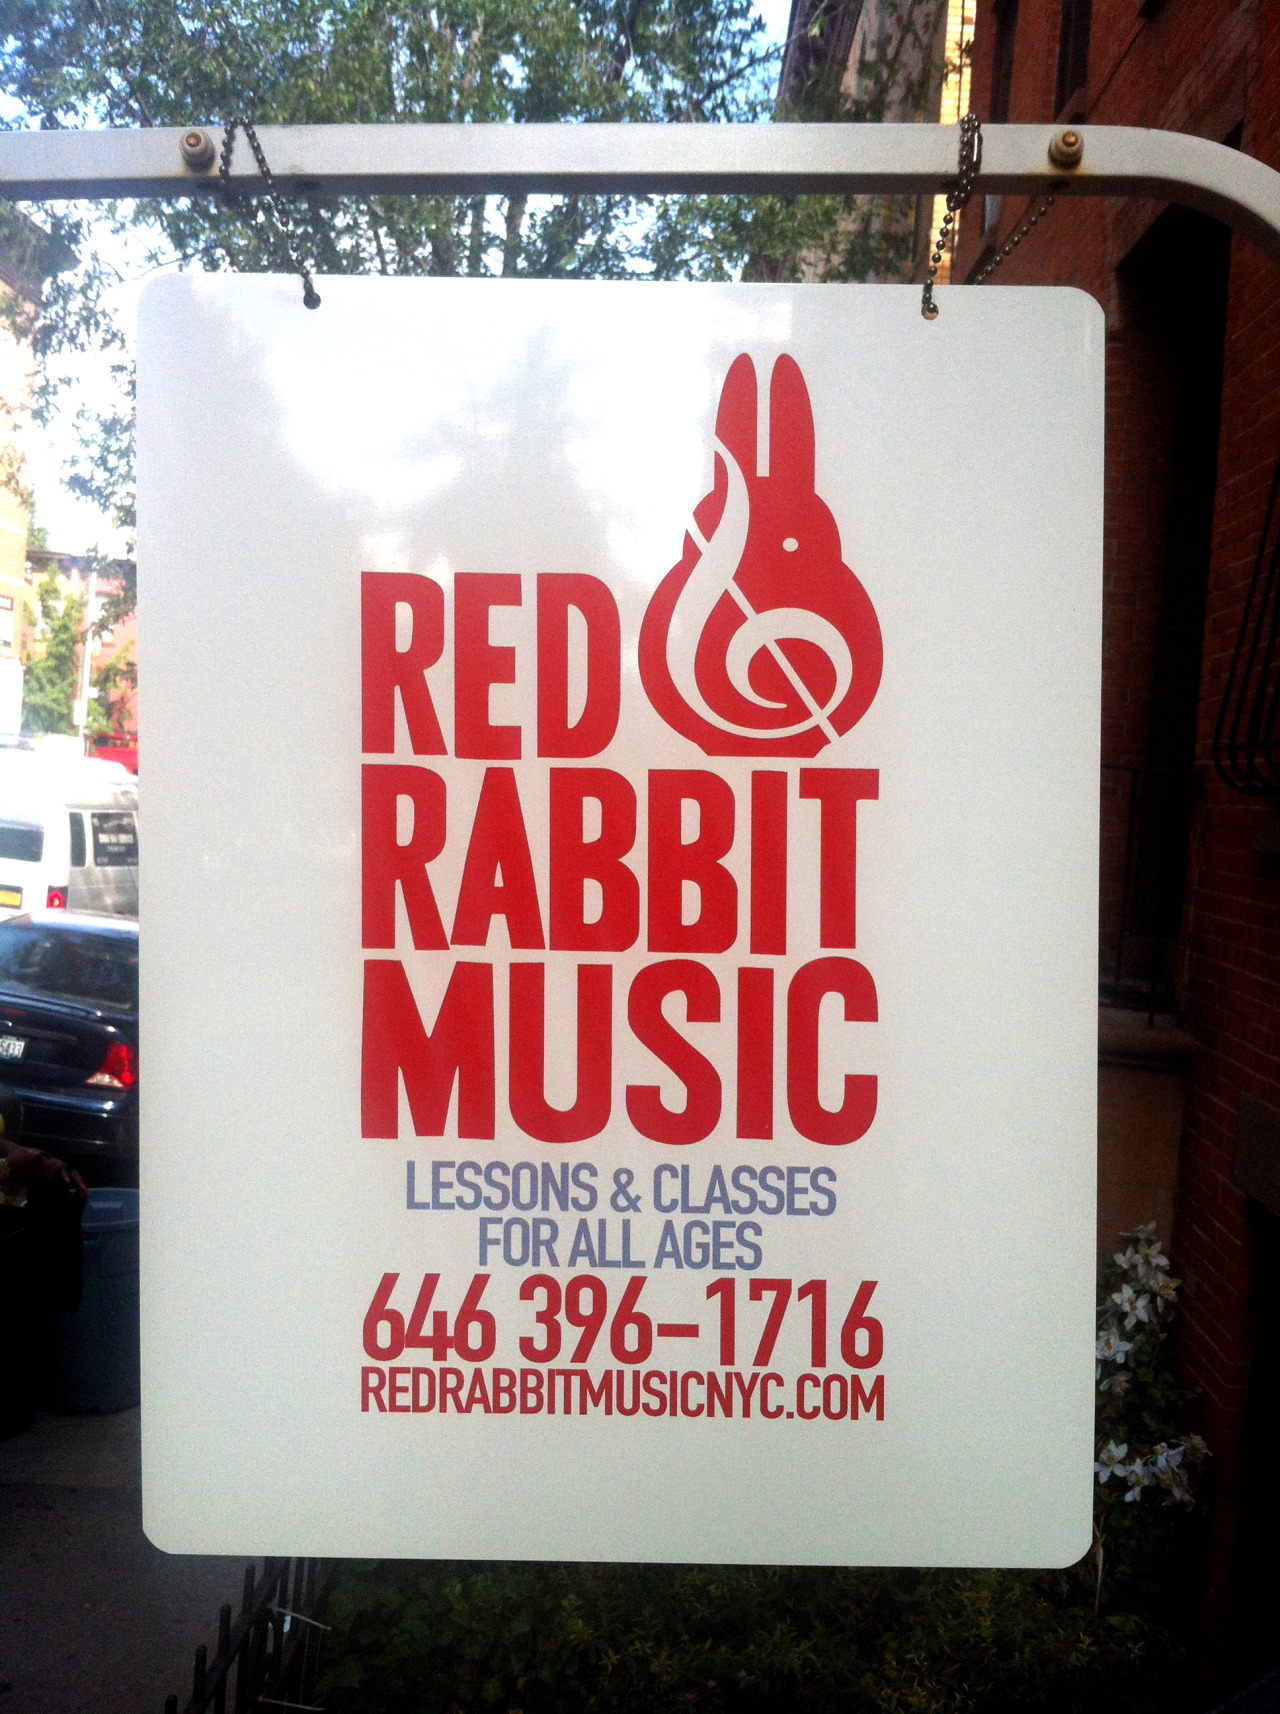 The Red Rabbit Music studio is here for YOU! We provide a variety of music lessons & it's never too late to start. Check us out at redrabbitmusicnyc.com!